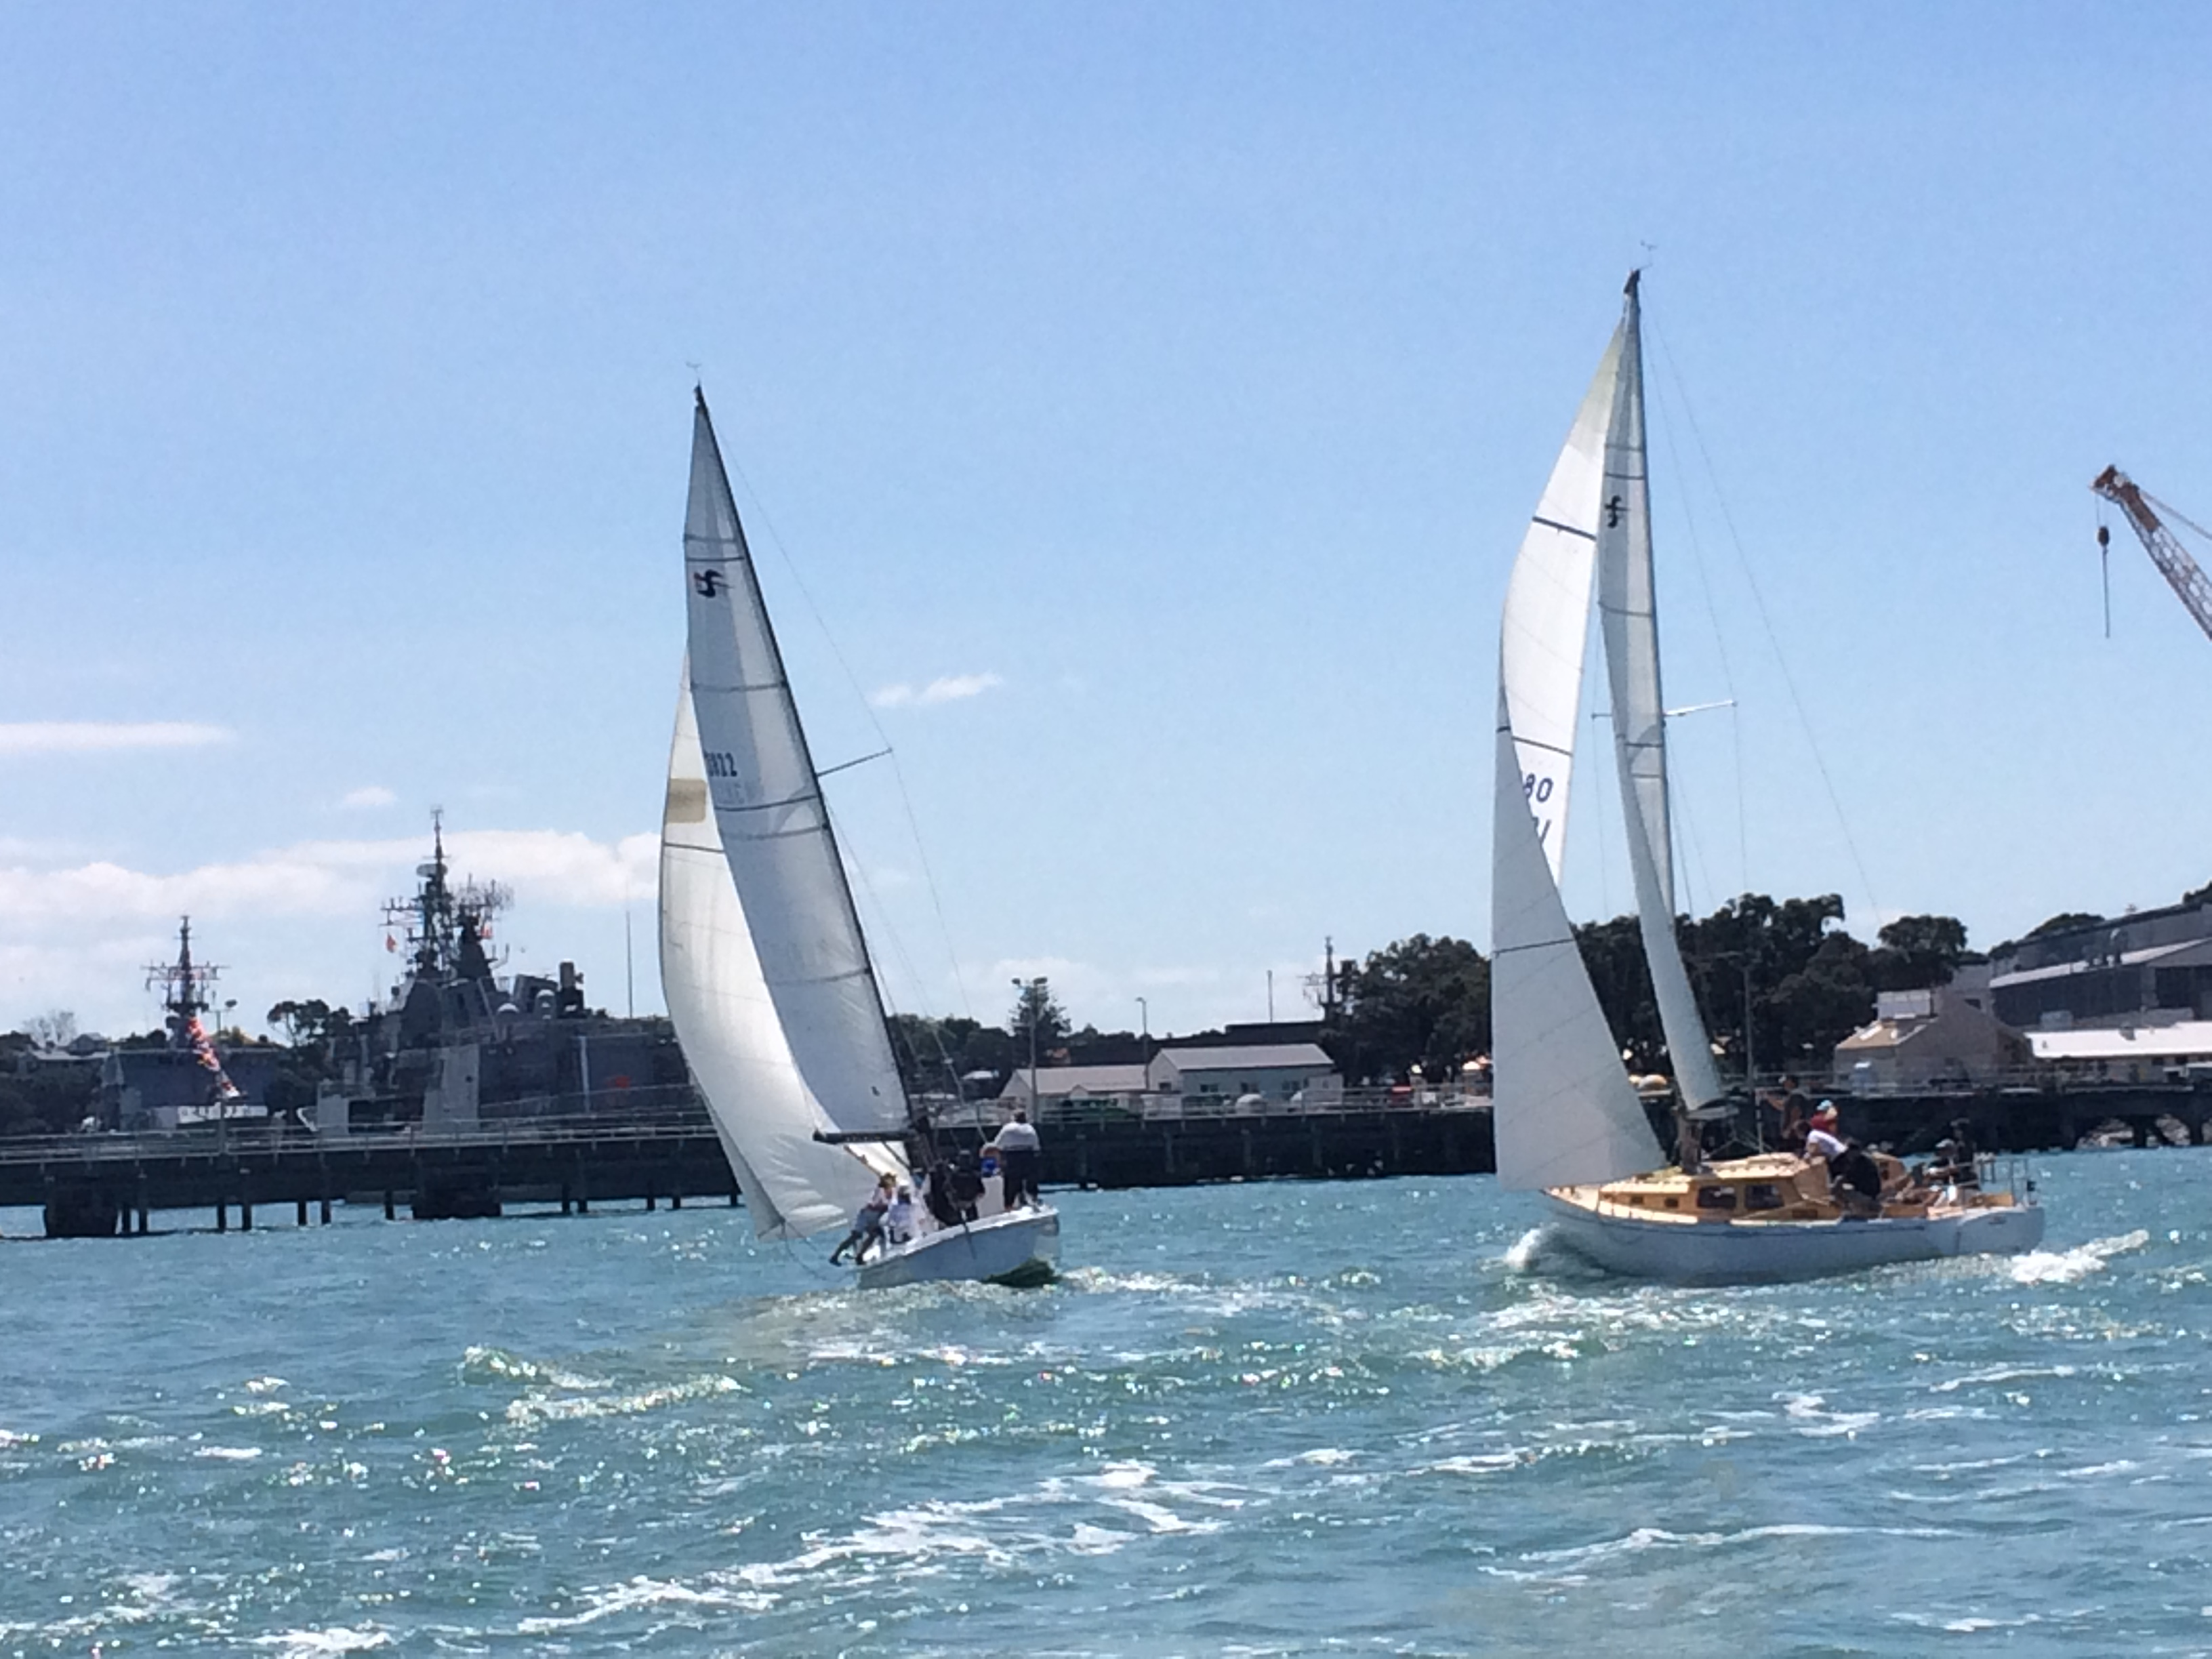 Pioneer and Precedent fighting on the way past Devonport